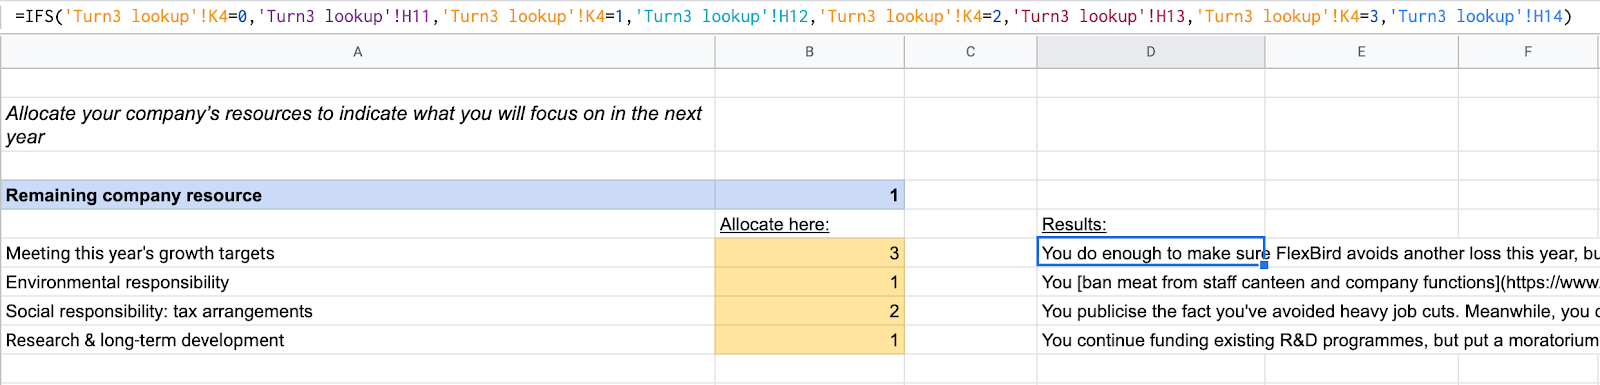 A screenshot of a spreadsheet showing game logic